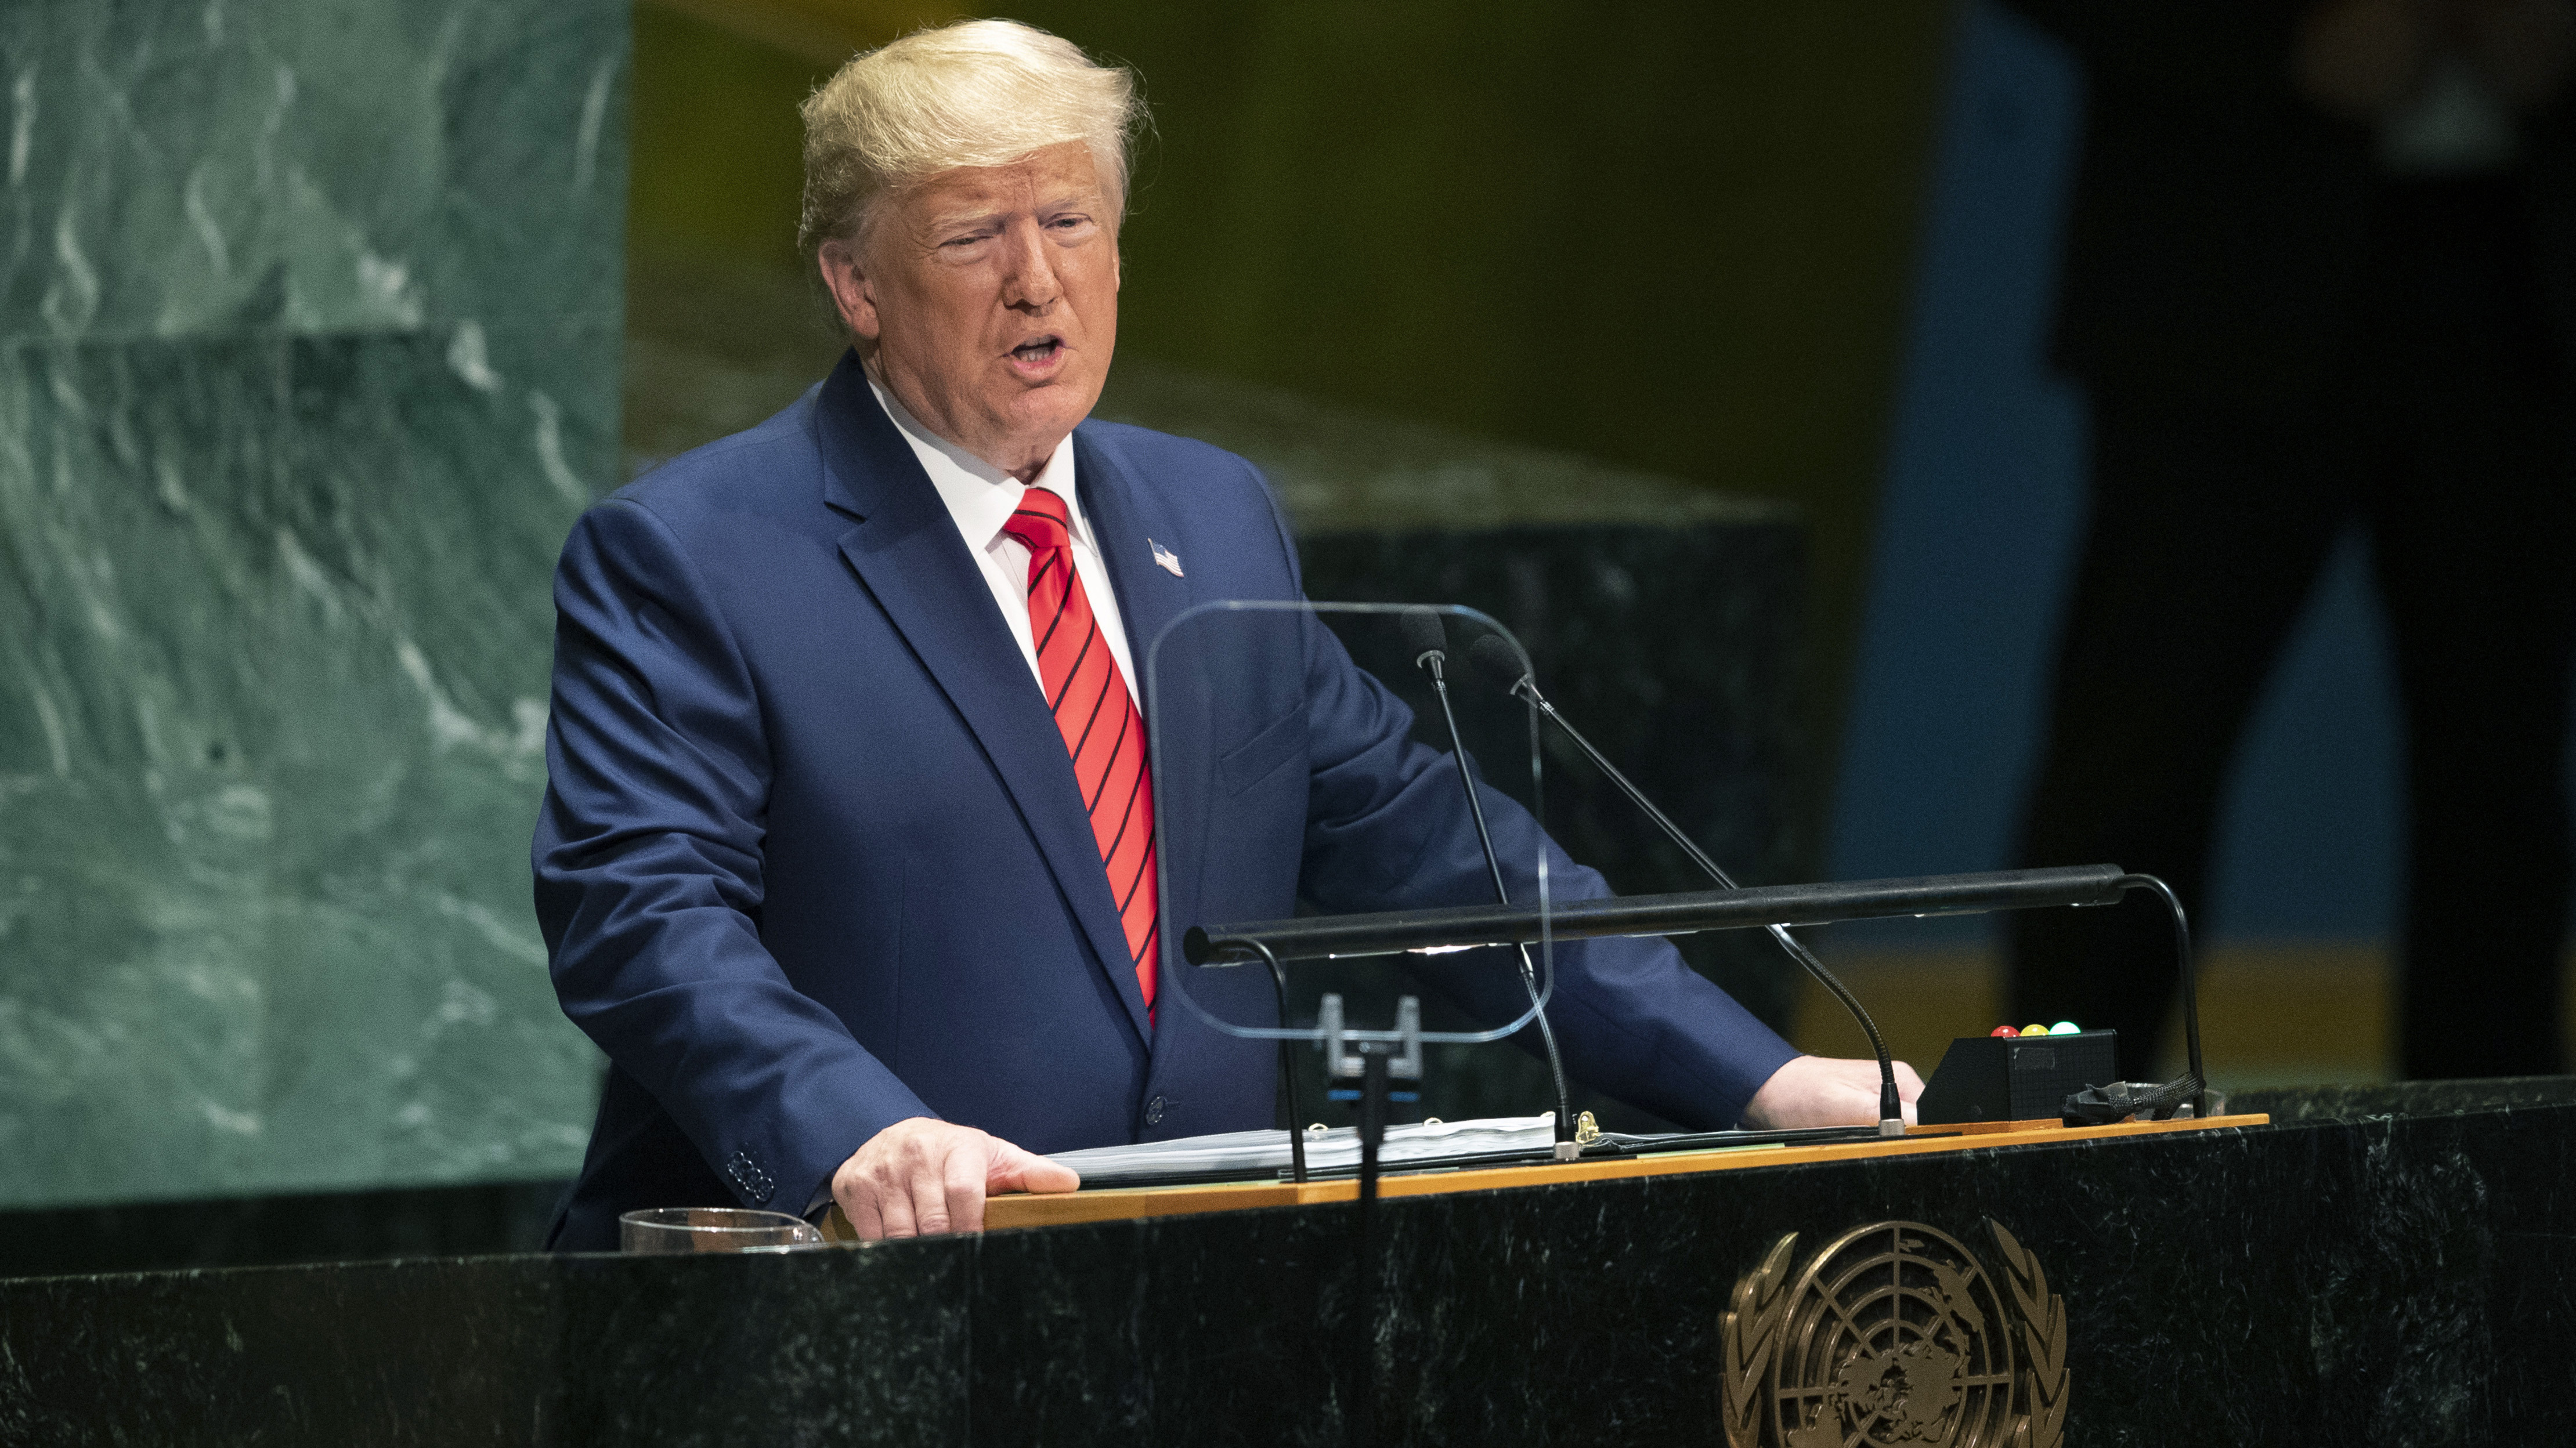 Trump calls on world to stand up to 'Iran's bloodlust'